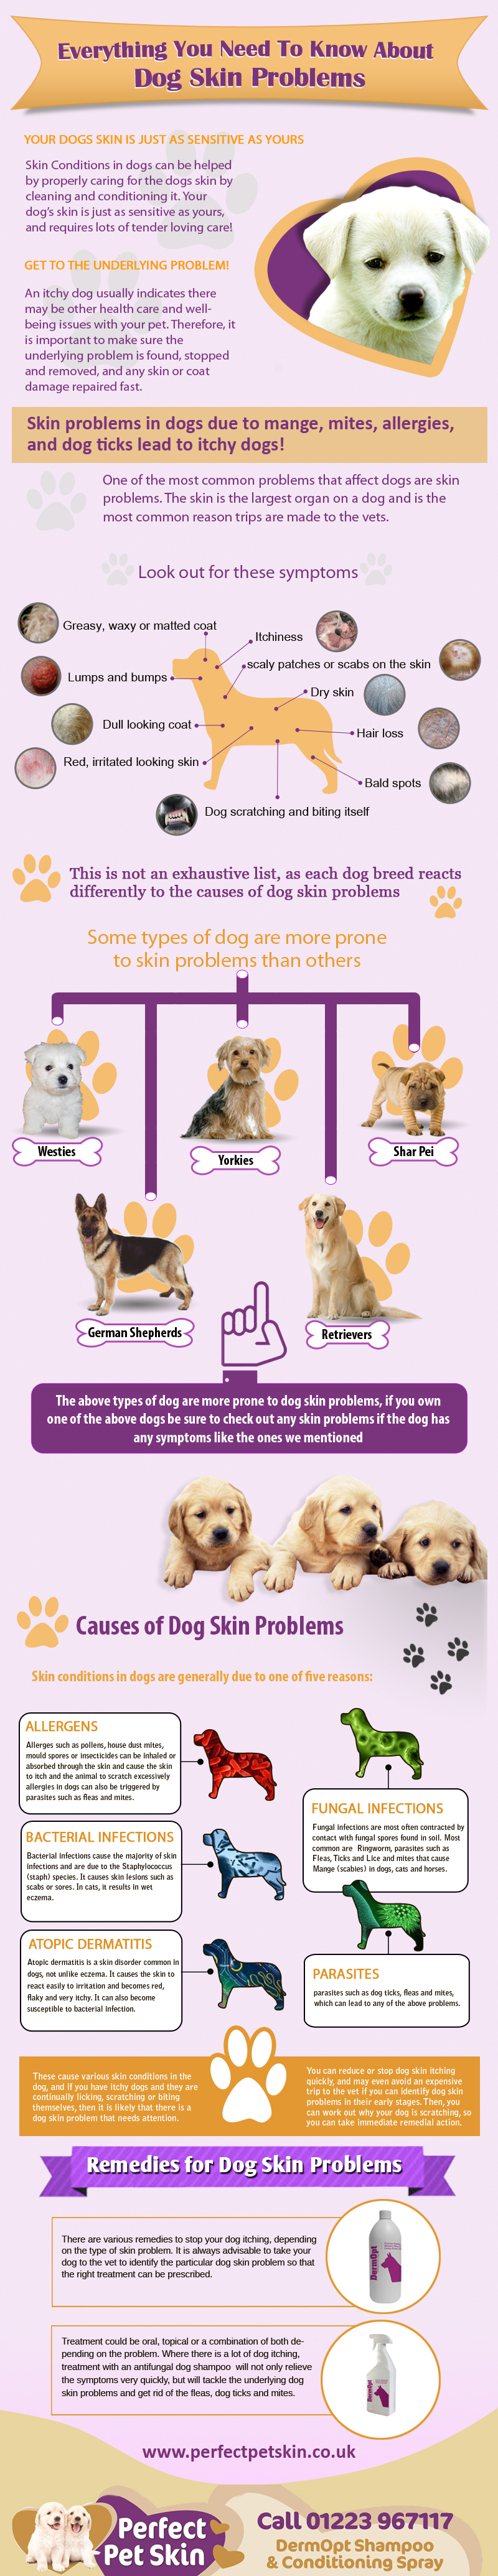 Everything you need to know about dog skin problems